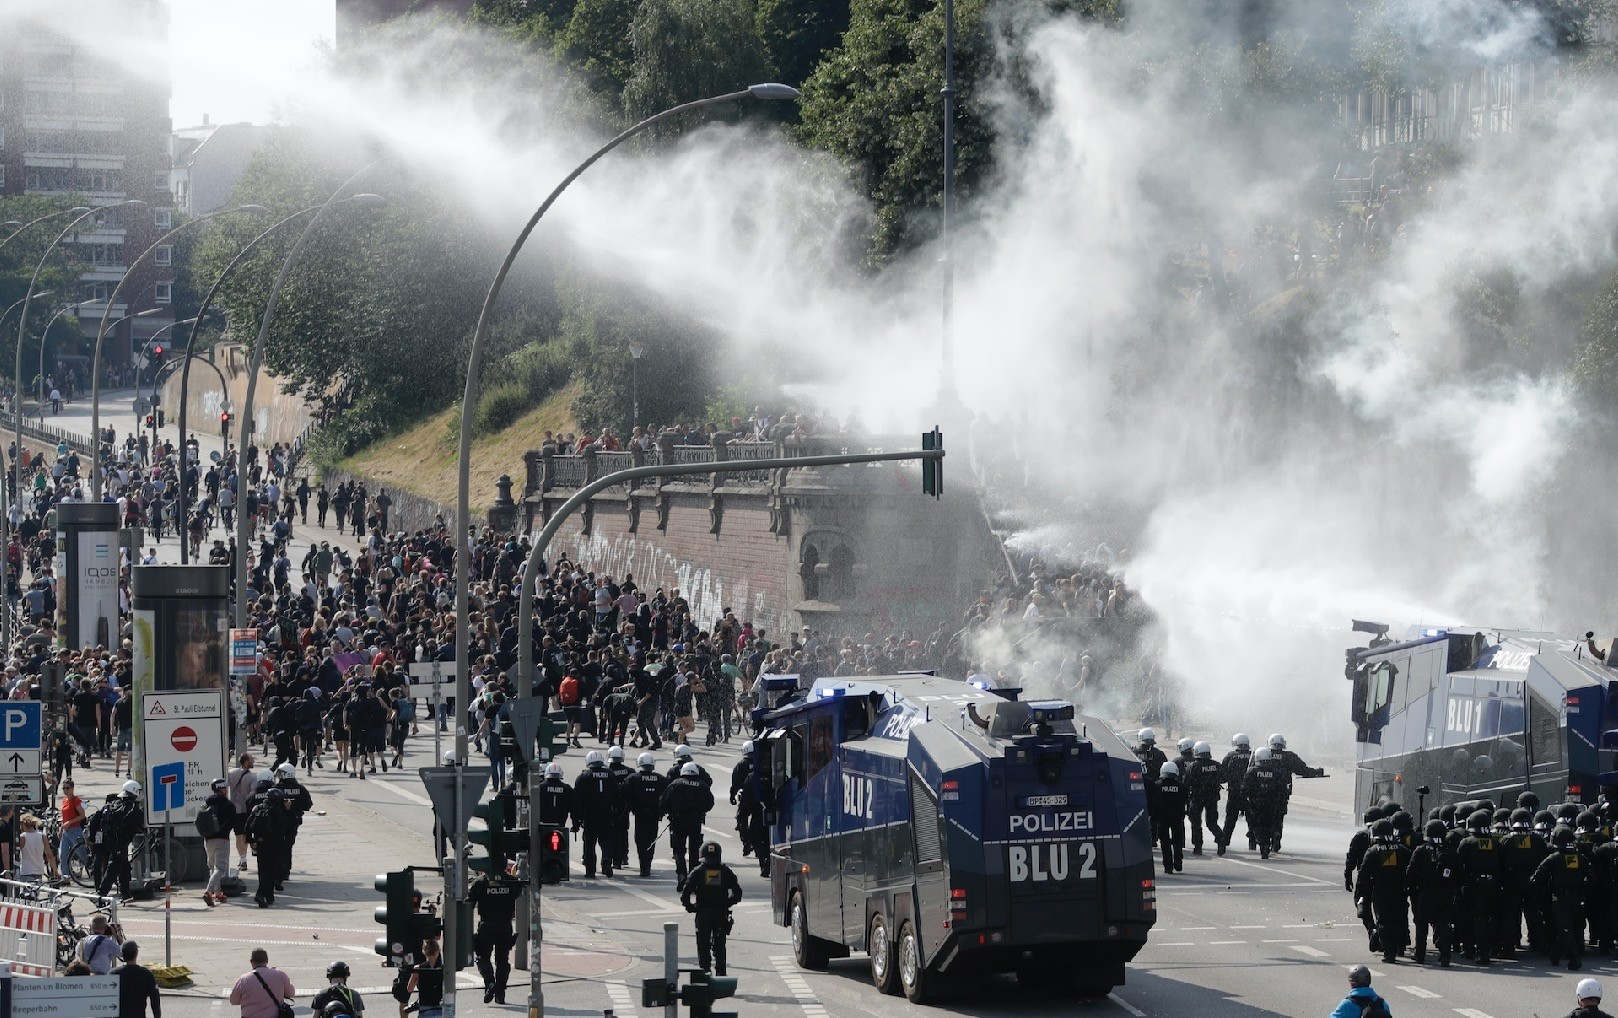 German police use a water cannon to clear a road on the first day of the G20 Summit in Hamburg, July 7, when a group of activists gathered to protest the G20 organization.